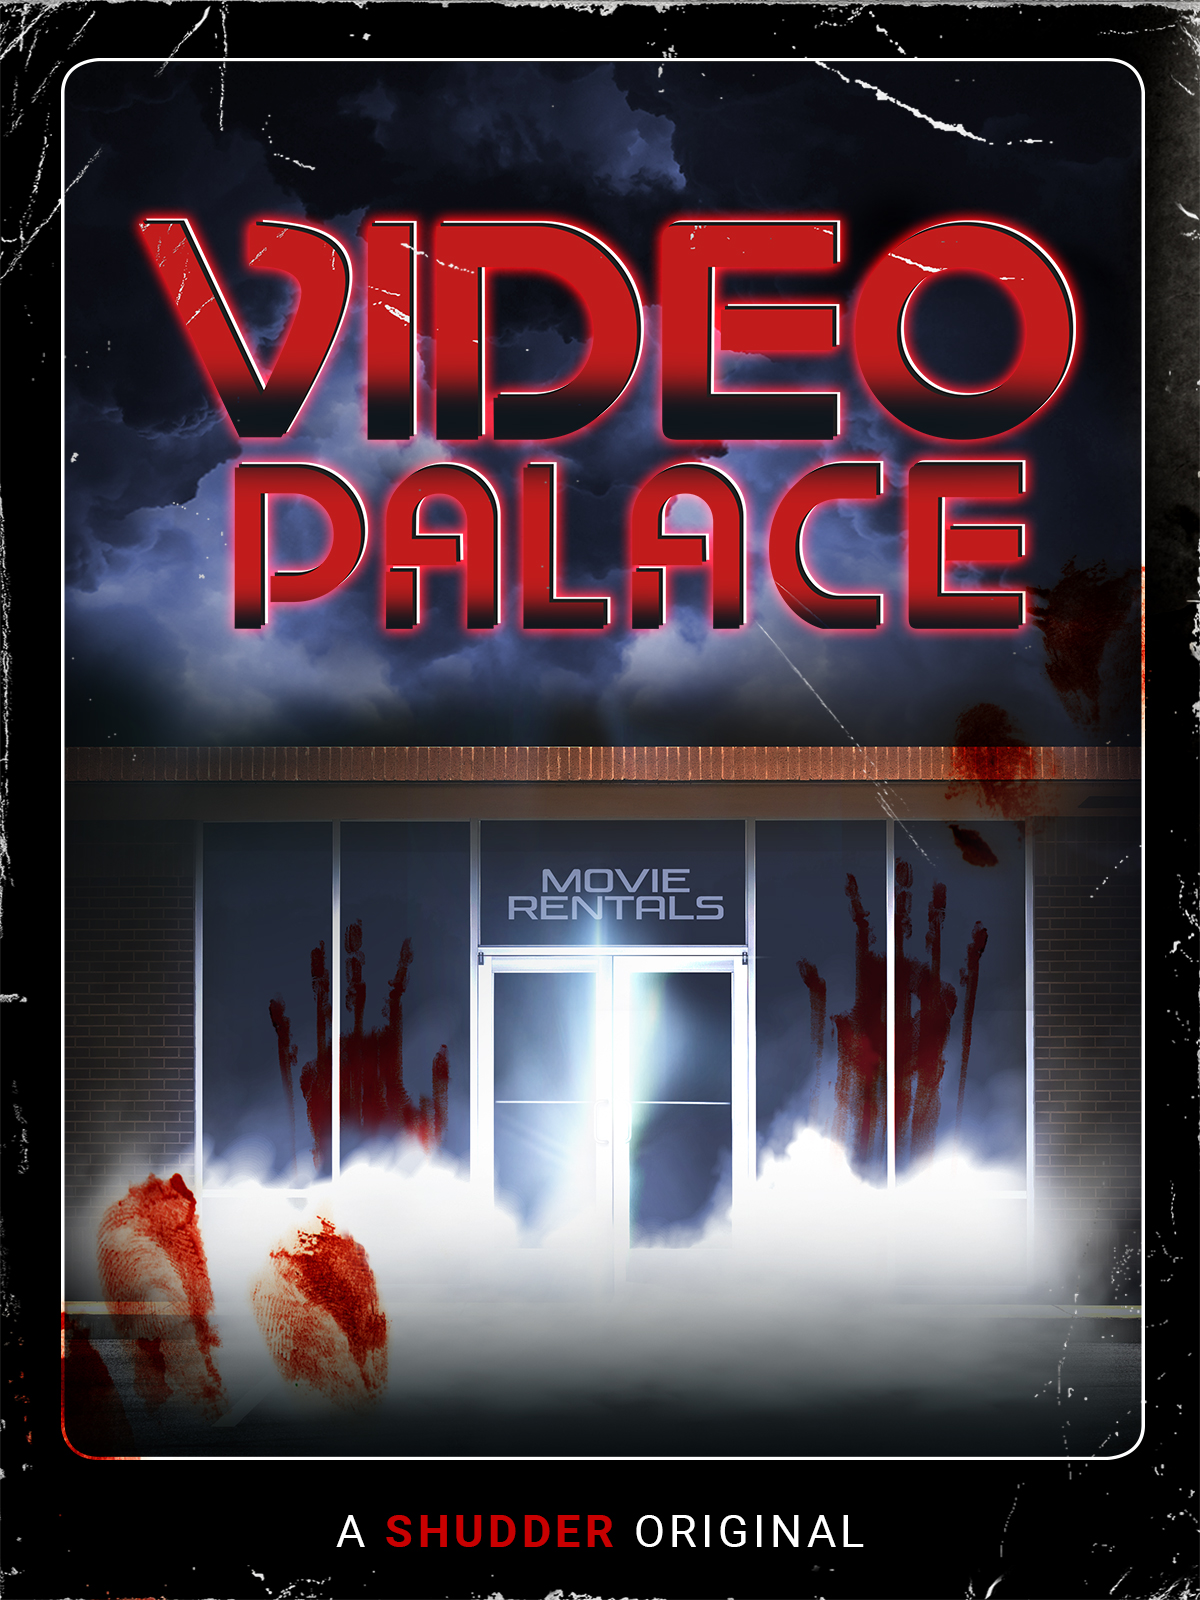 Video Palace - Poster Art